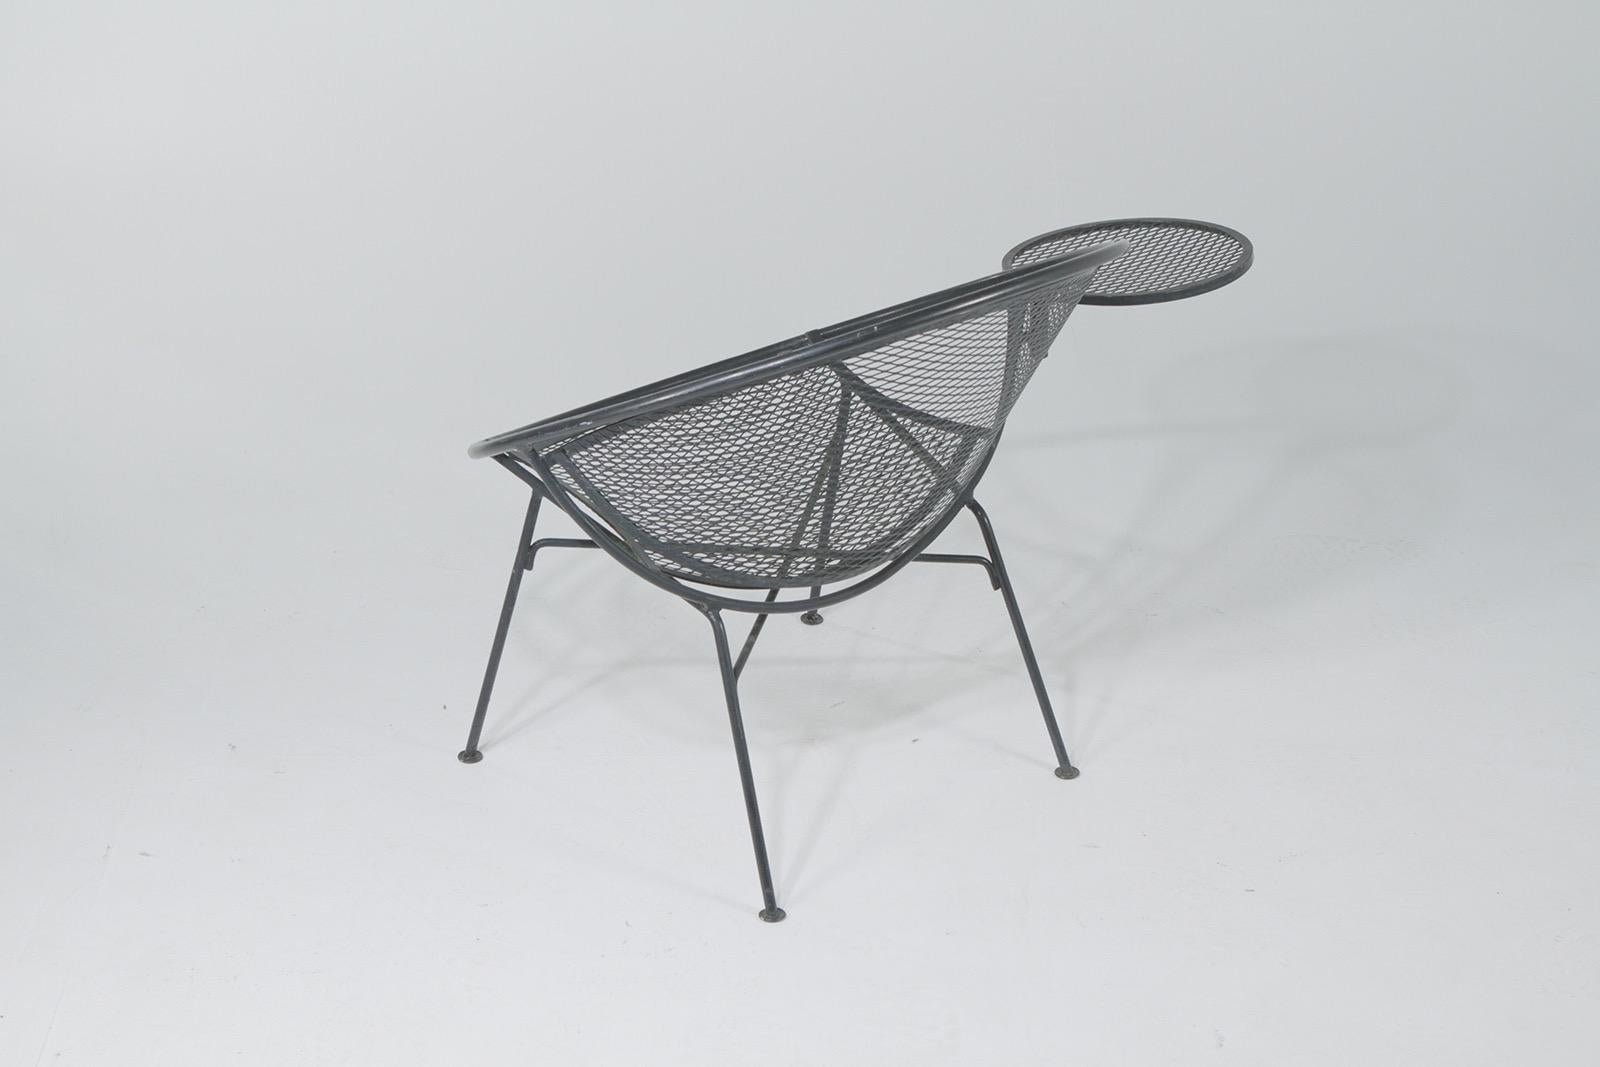 Iconic Salterini Mid Century Modern Patio Chairs With Attached Side Table Pair At 1stdibs